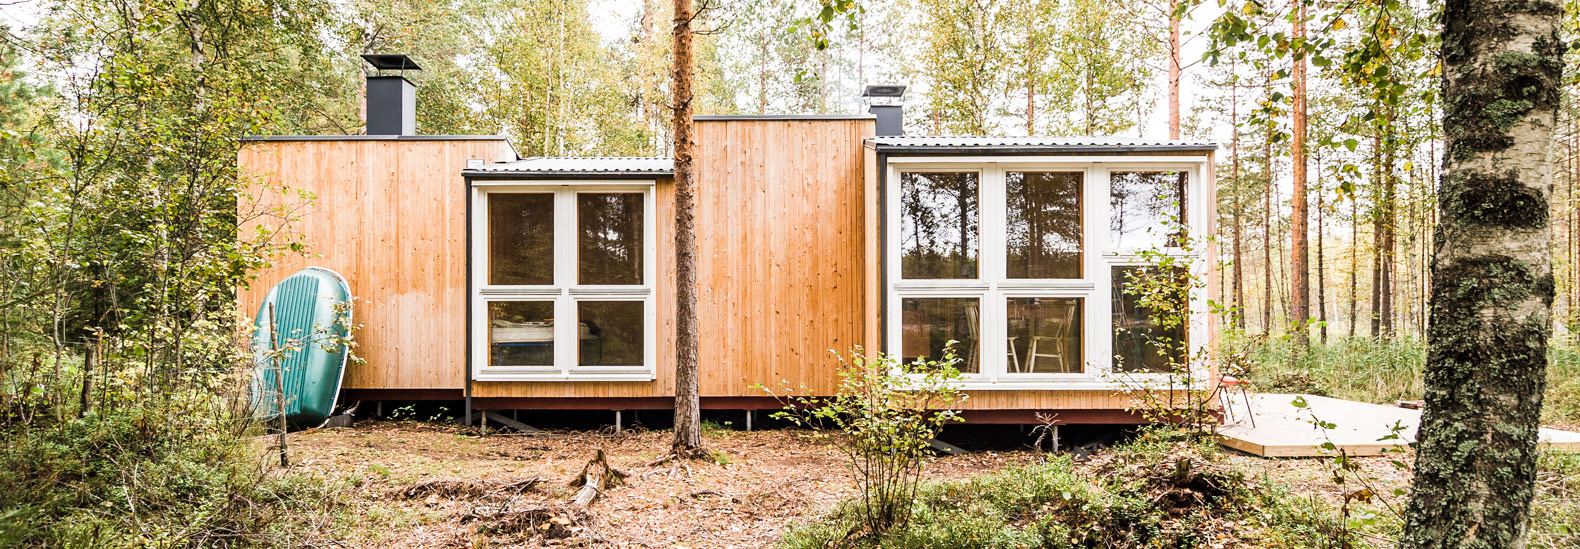 Two Design Students Build Off Grid Cabin In Remote Finnish Forest